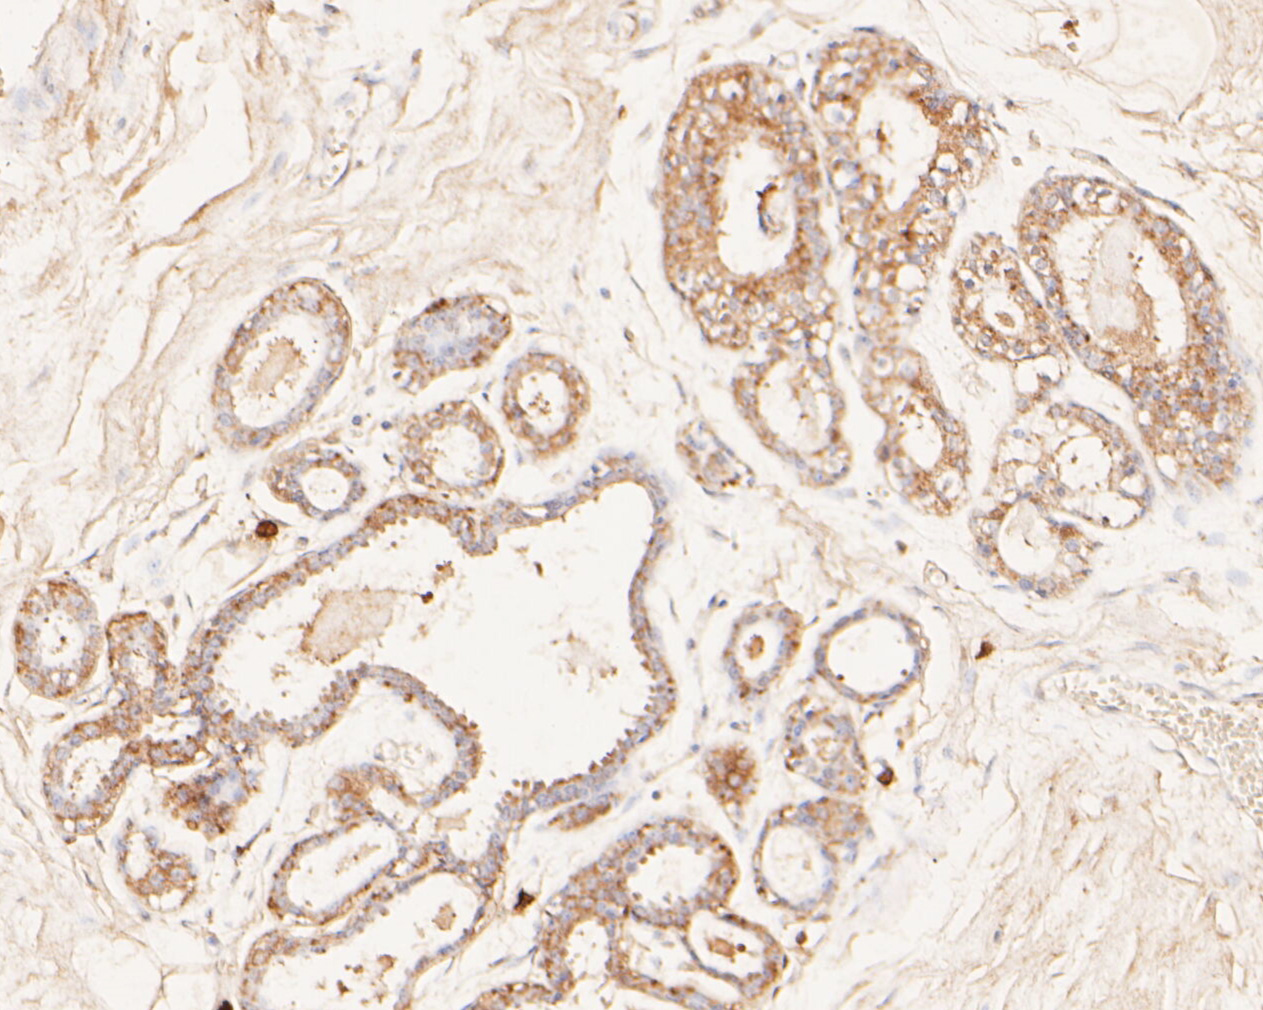 Immunohistochemical analysis of paraffin-embedded human breast tissue using anti-MAGT1 antibody. The section was pre-treated using heat mediated antigen retrieval with Tris-EDTA buffer (pH 8.0-8.4) for 20 minutes.The tissues were blocked in 5% BSA for 30 minutes at room temperature, washed with ddH2O and PBS, and then probed with the primary antibody (ER1902-99, 1/50) for 30 minutes at room temperature. The detection was performed using an HRP conjugated compact polymer system. DAB was used as the chromogen. Tissues were counterstained with hematoxylin and mounted with DPX.